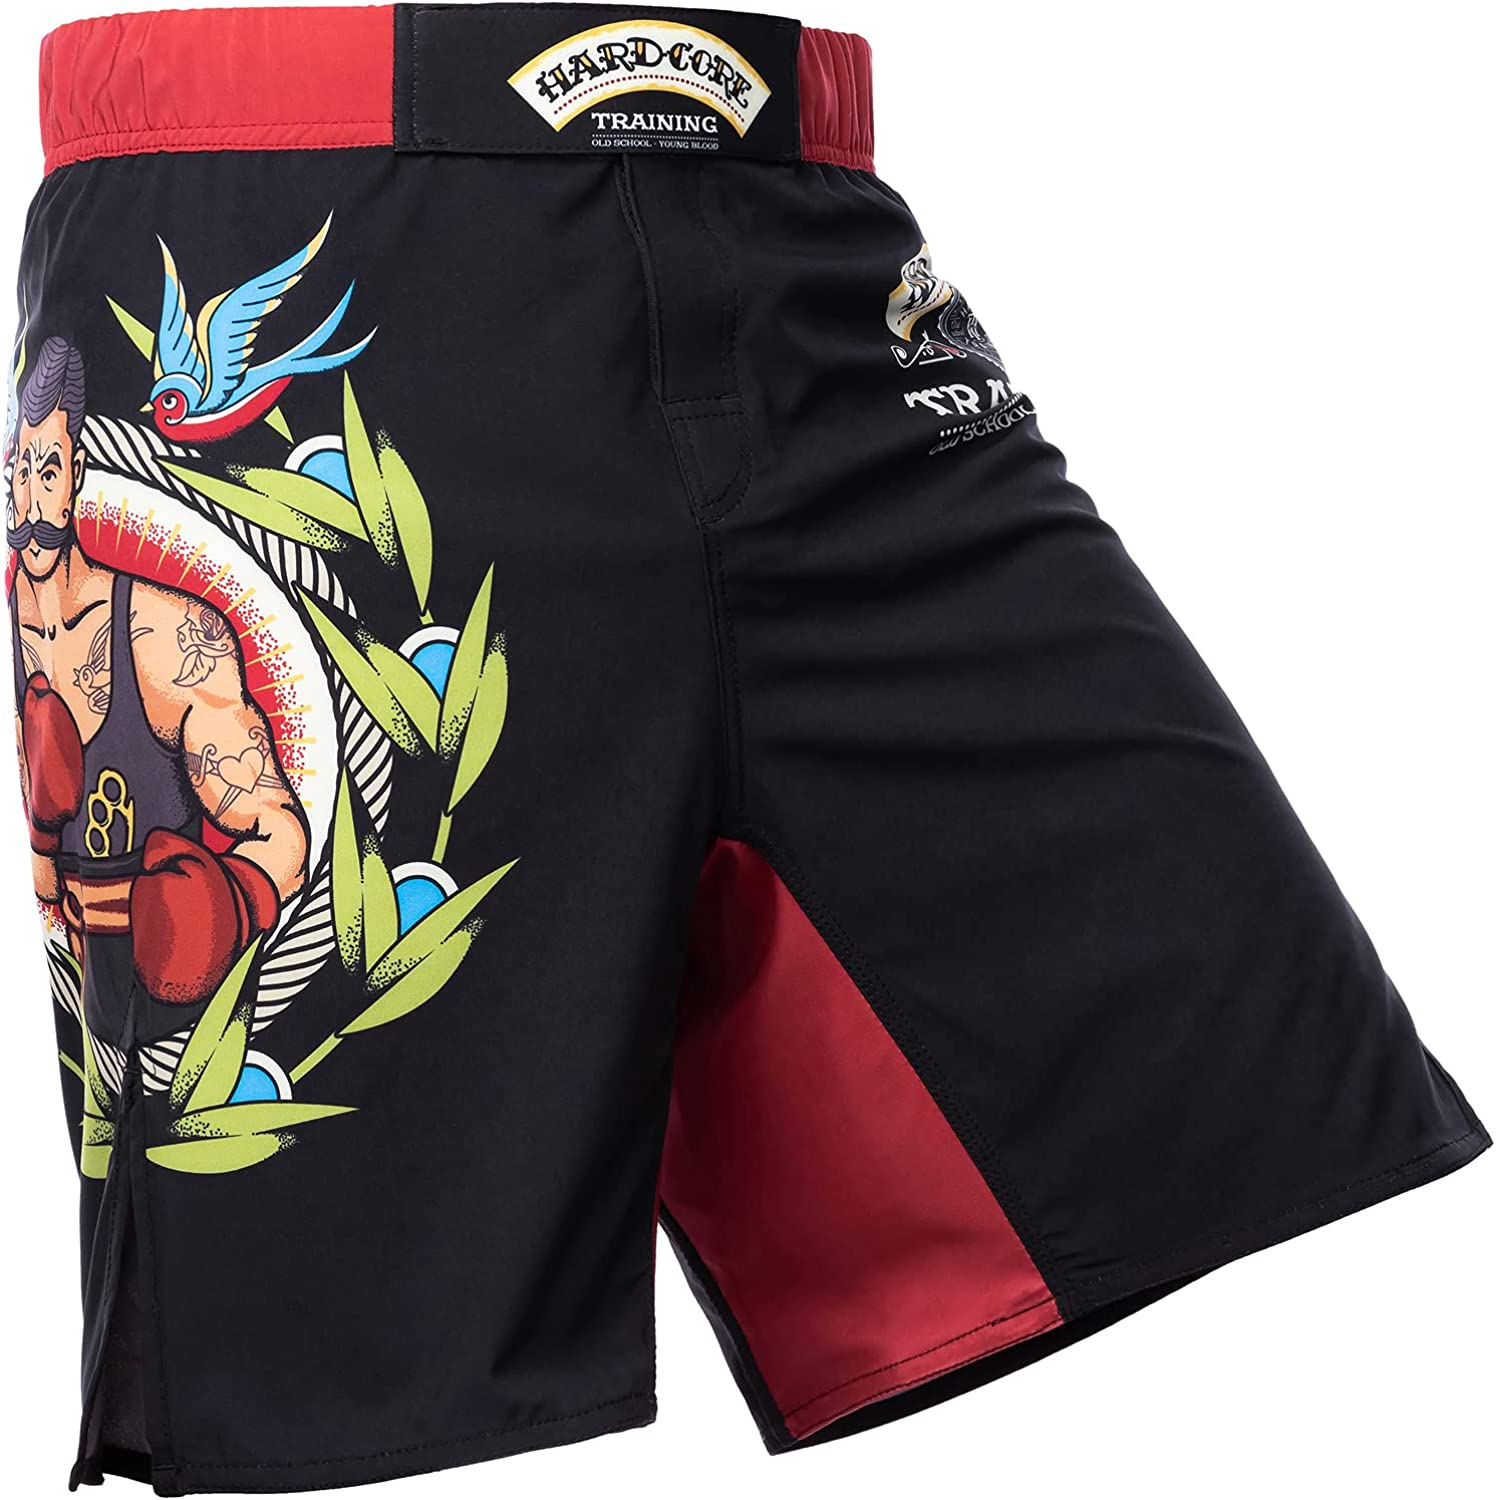 Hardcore Training Fight Time sale Shorts Old Wrestling Ranking TOP14 Tattoo Men's Boxing